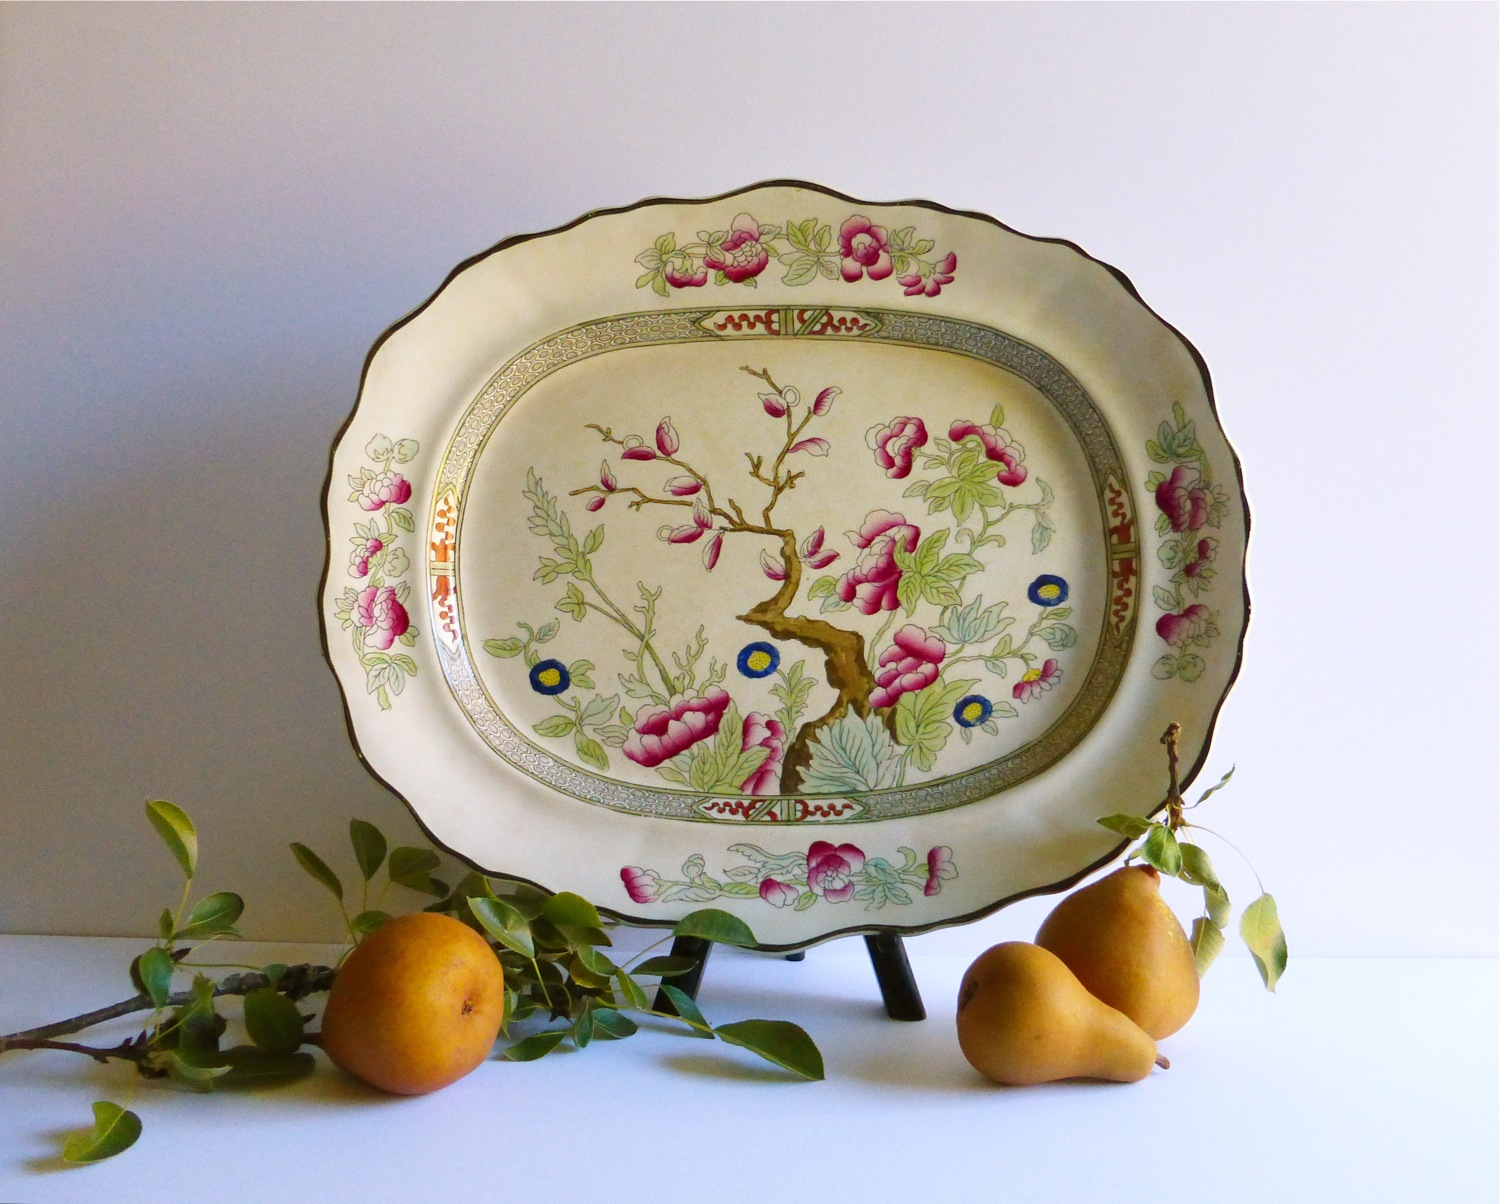 Indian Tree pattern, Burgess & Leigh Indian Tree Platter, antique pottery, chinoiserie, Chinoiserie Style, Burgess & Leigh Indian Tree antique transferware, antique transferware, decorated transferware, handpainted transferware, antique handpainted transferware, Indian Tree transferware